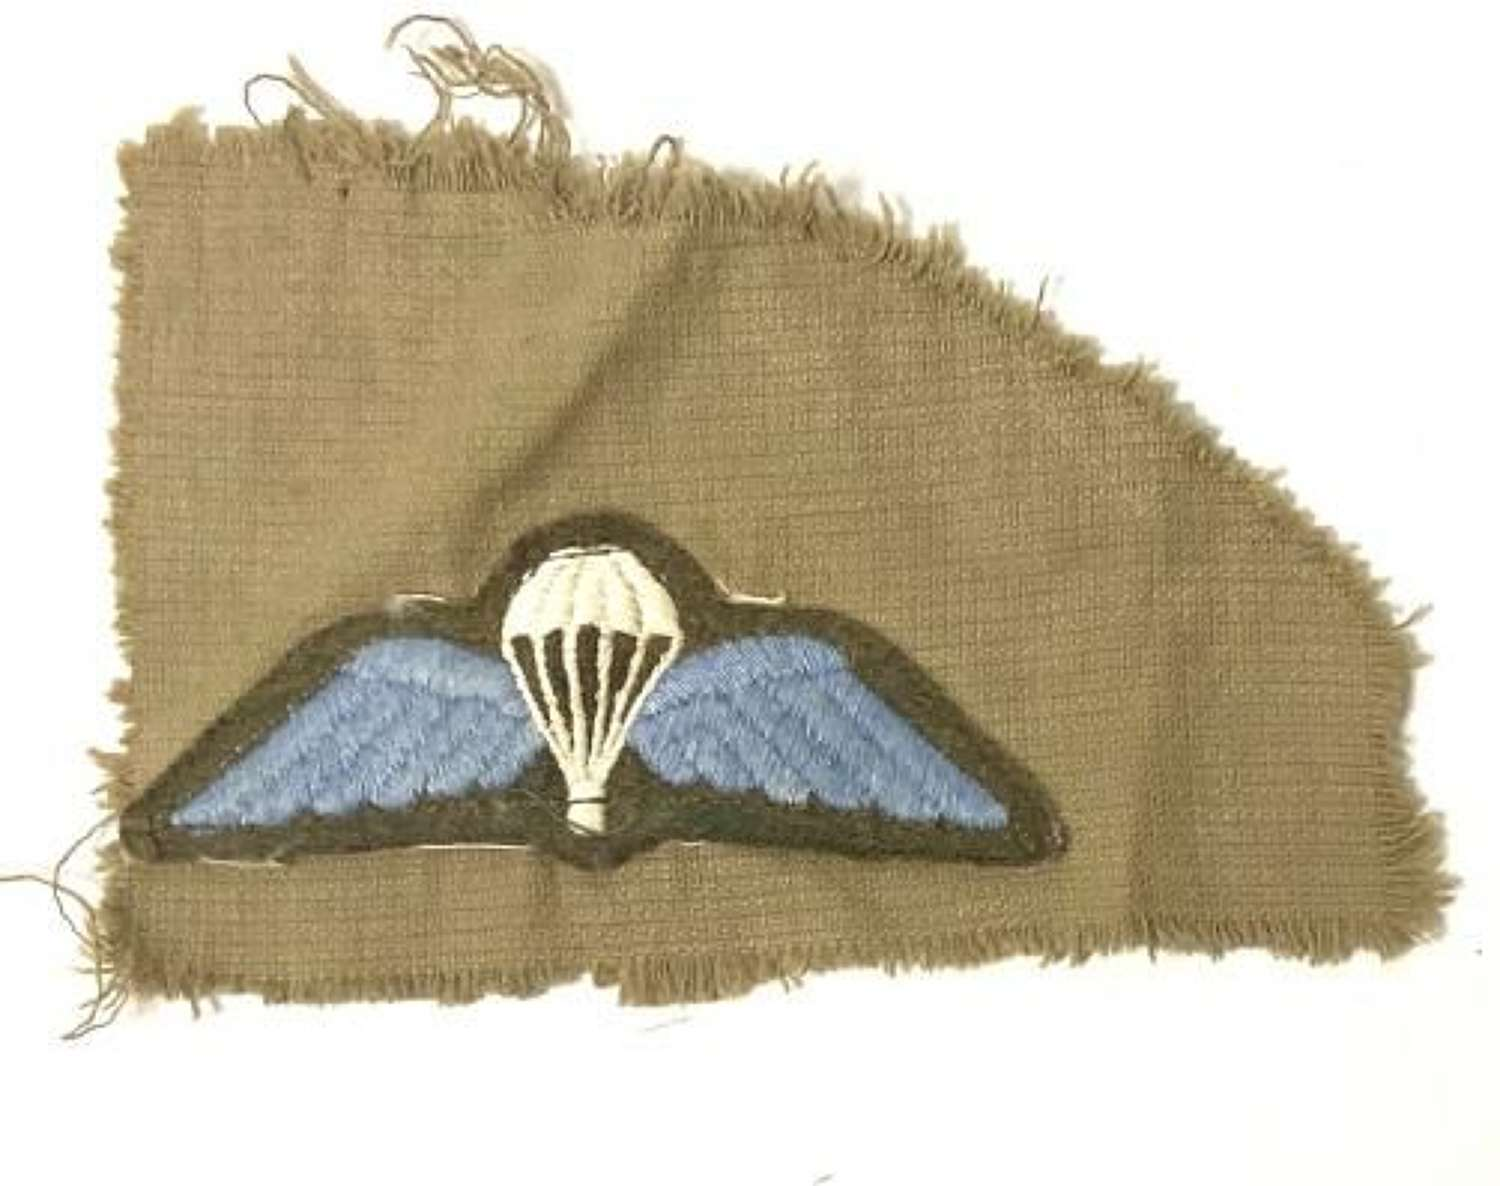 Original 1950s British Army Parachute Qualification Badge